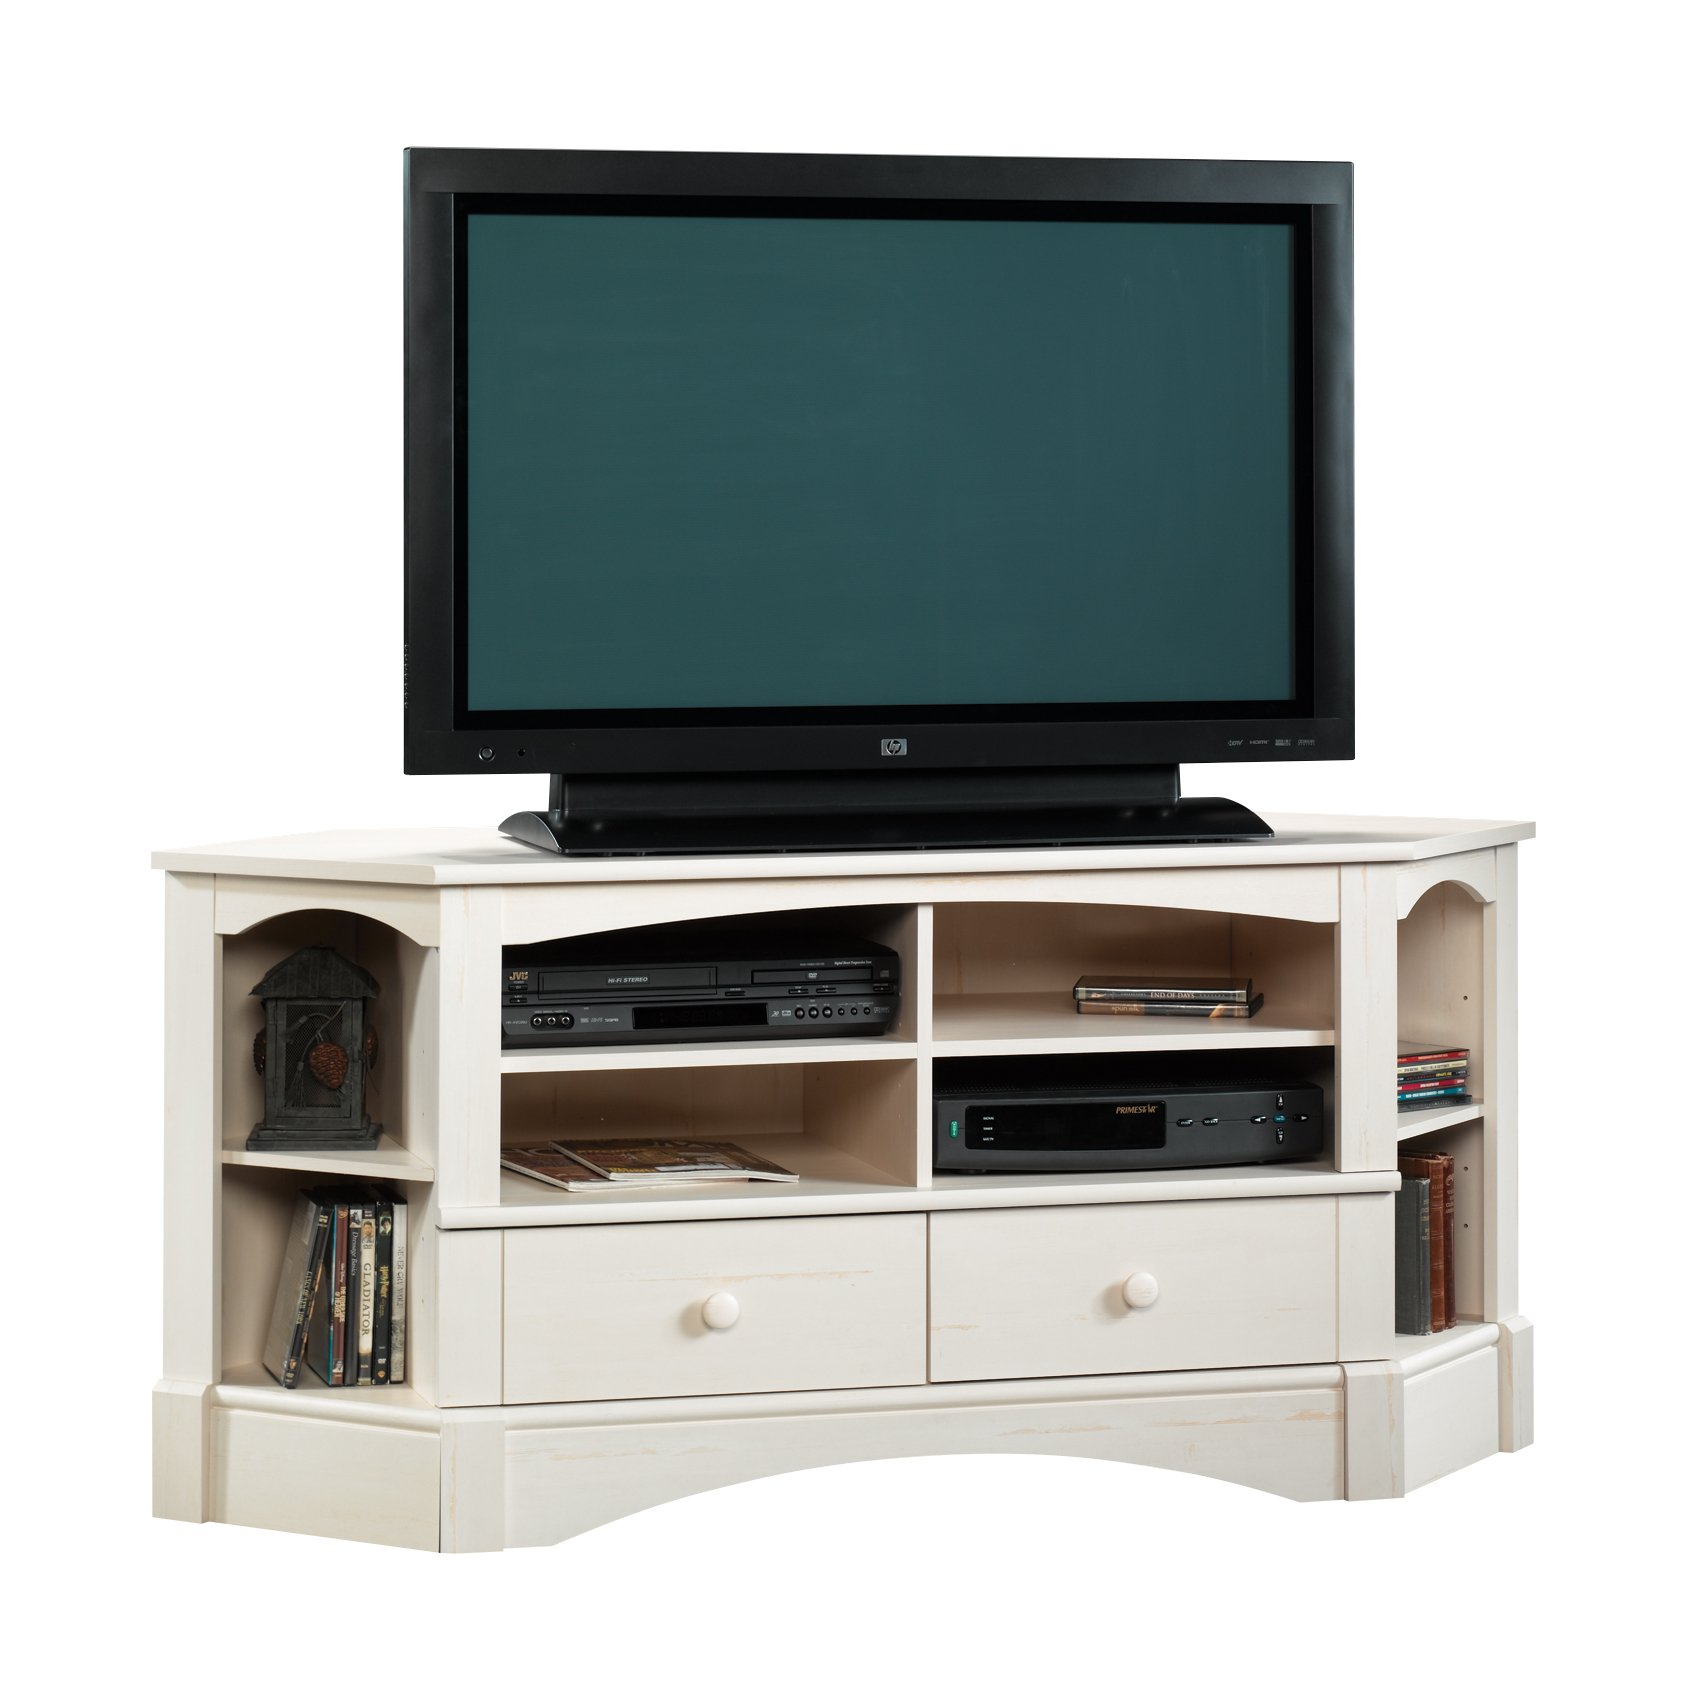 Sauder Harbor View Corner Entertainment Credenza, For TVs up to 60'', Antiqued White finish by Sauder